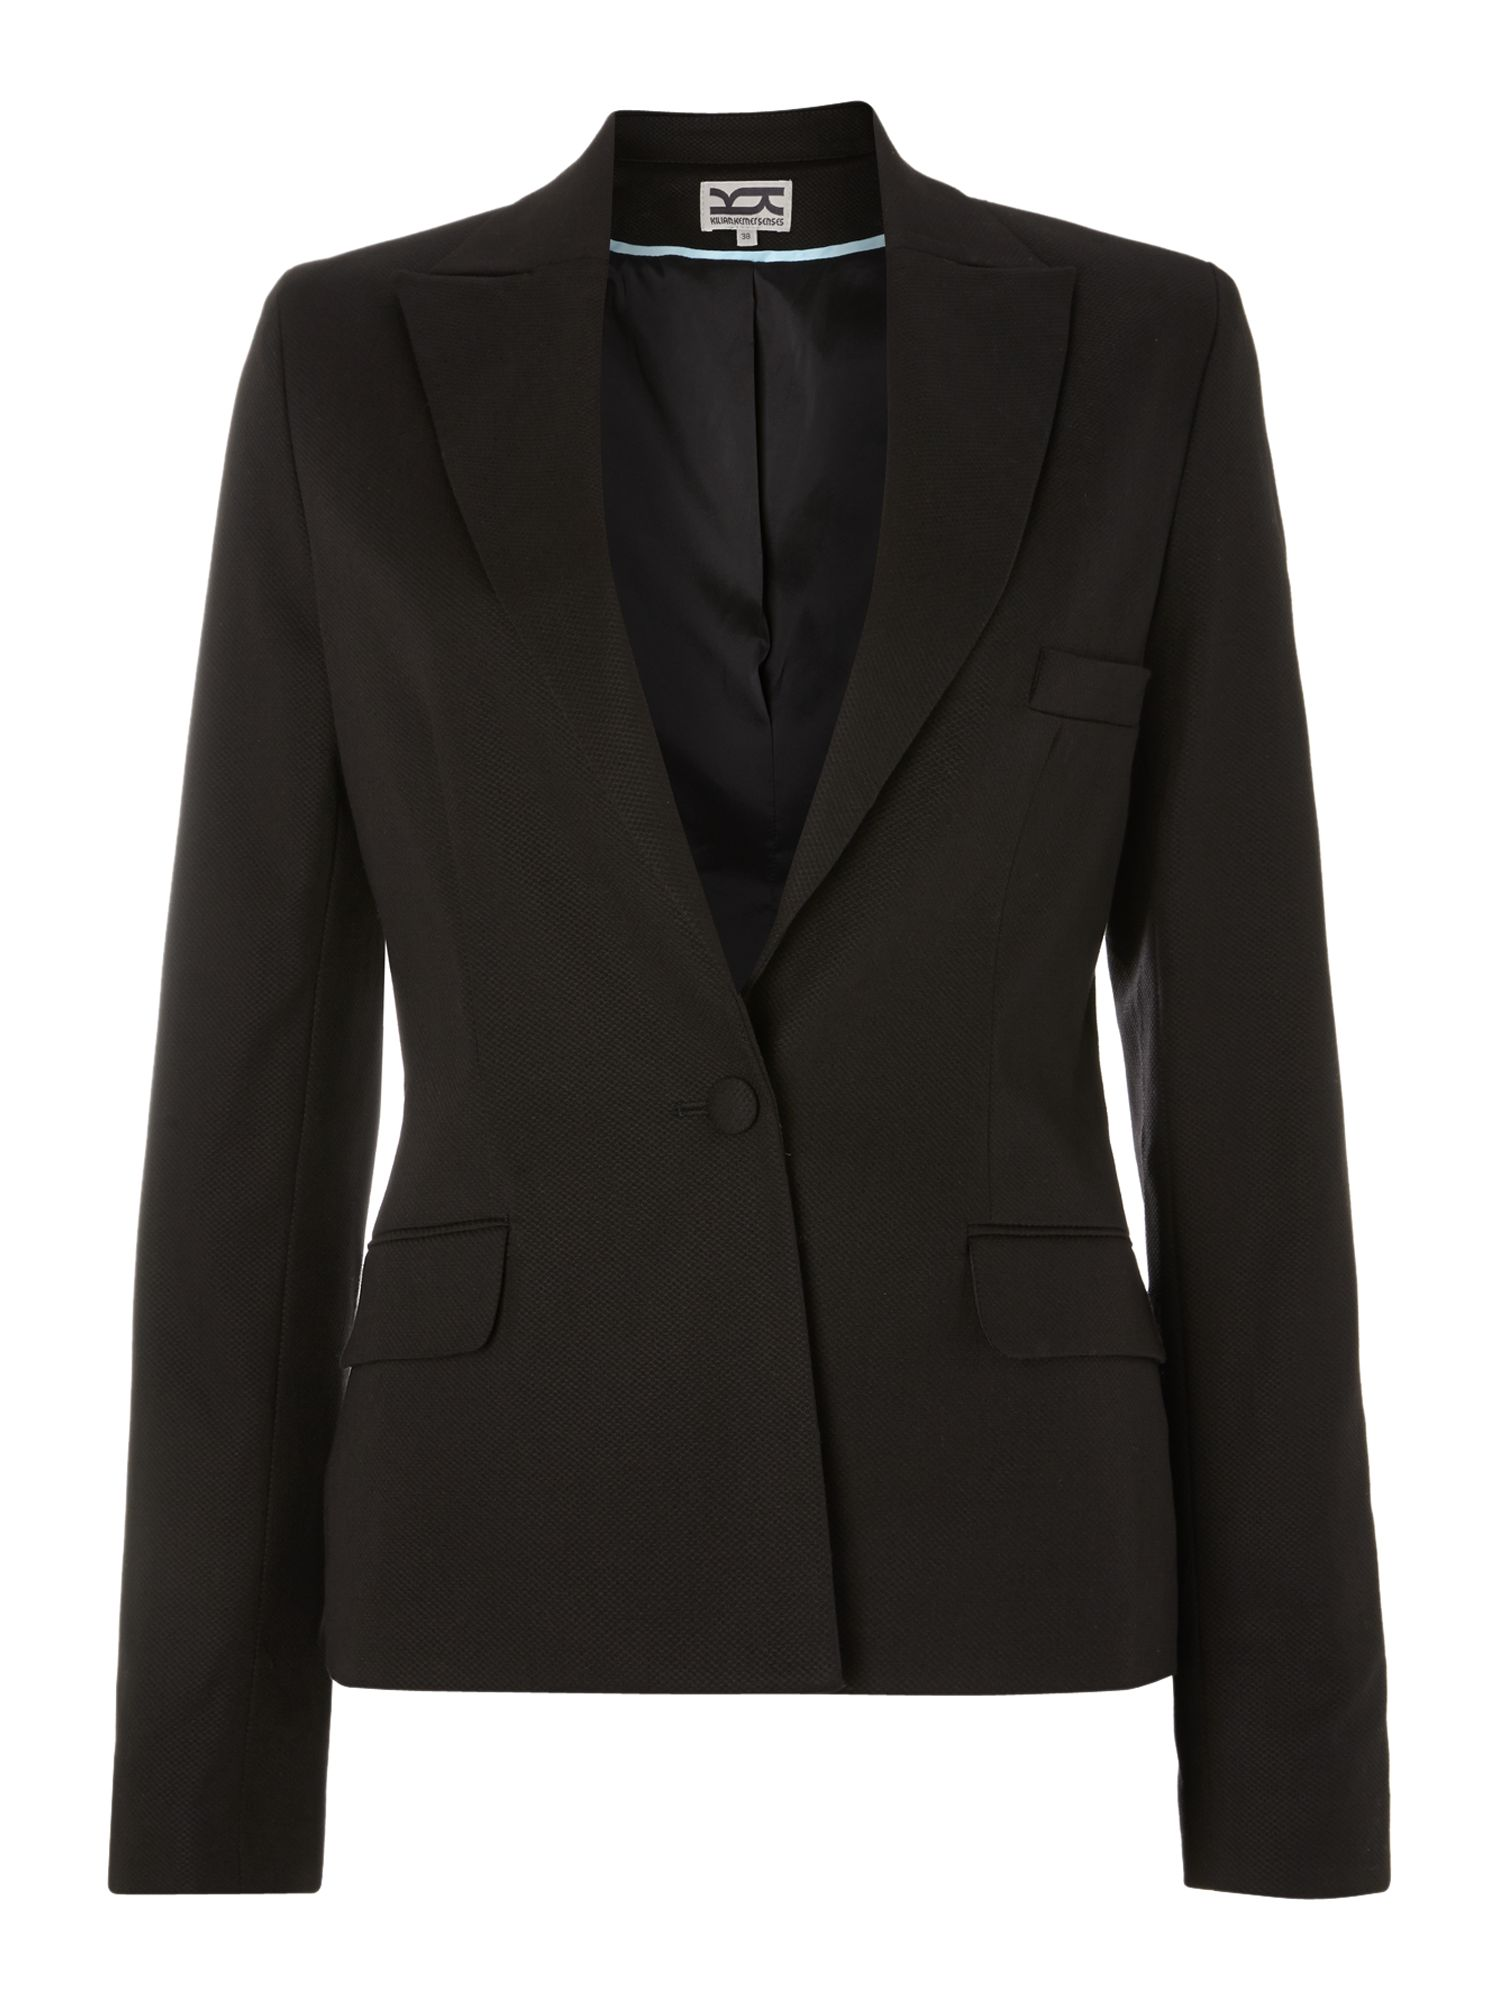 Pique single breasted club blazer